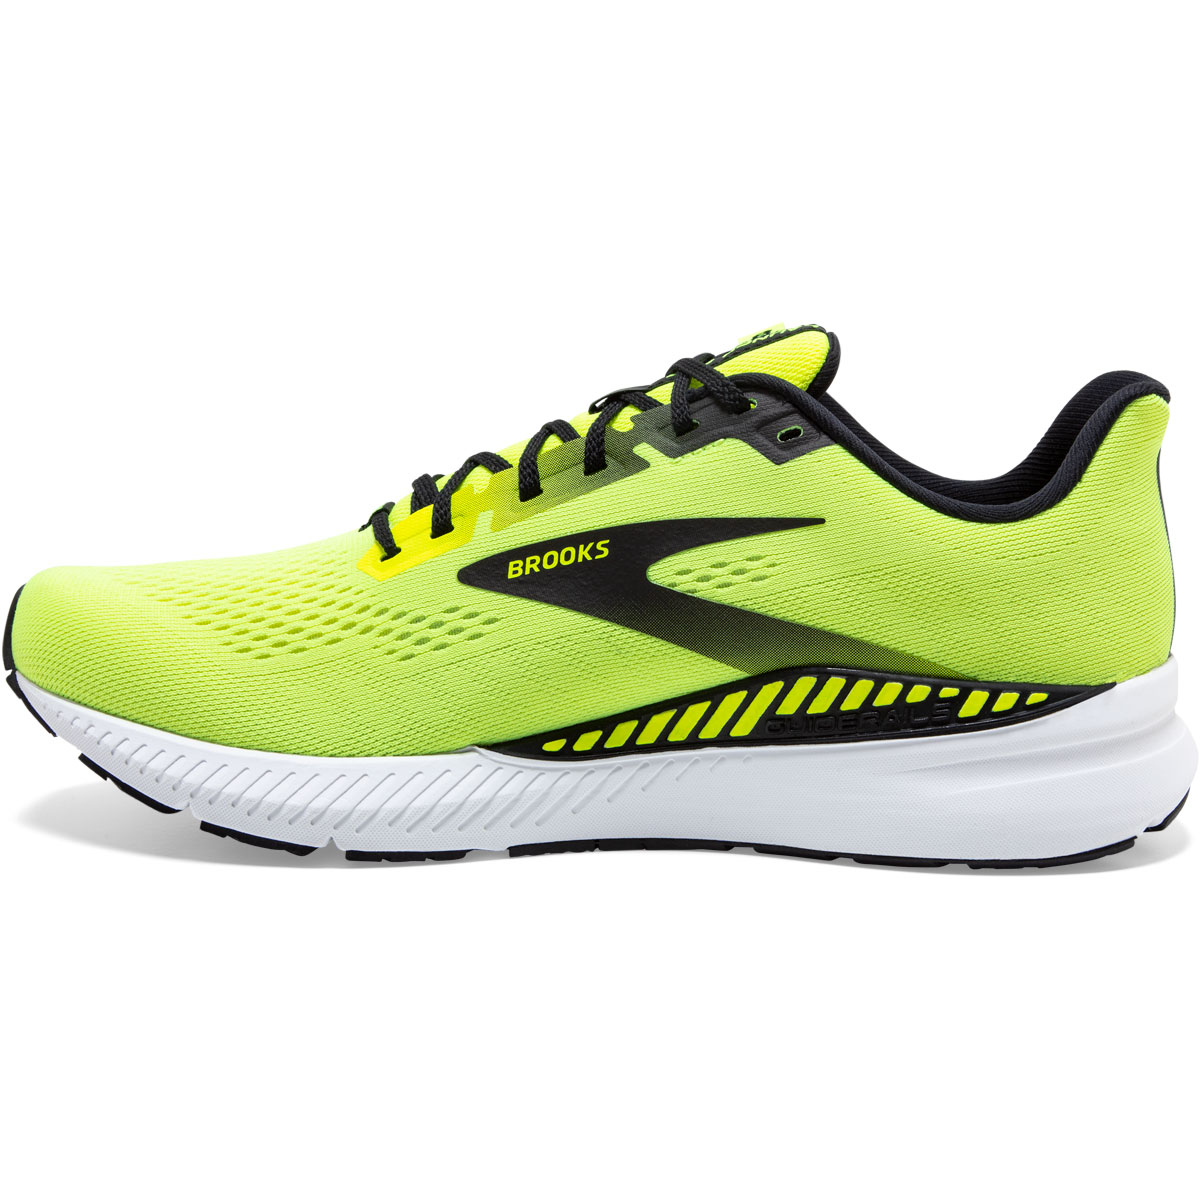 Men's Brooks Launch GTS 8 Running Shoe - Color: Nightlife/Black - Size: 7 - Width: Regular, Nightlife/Black, large, image 2